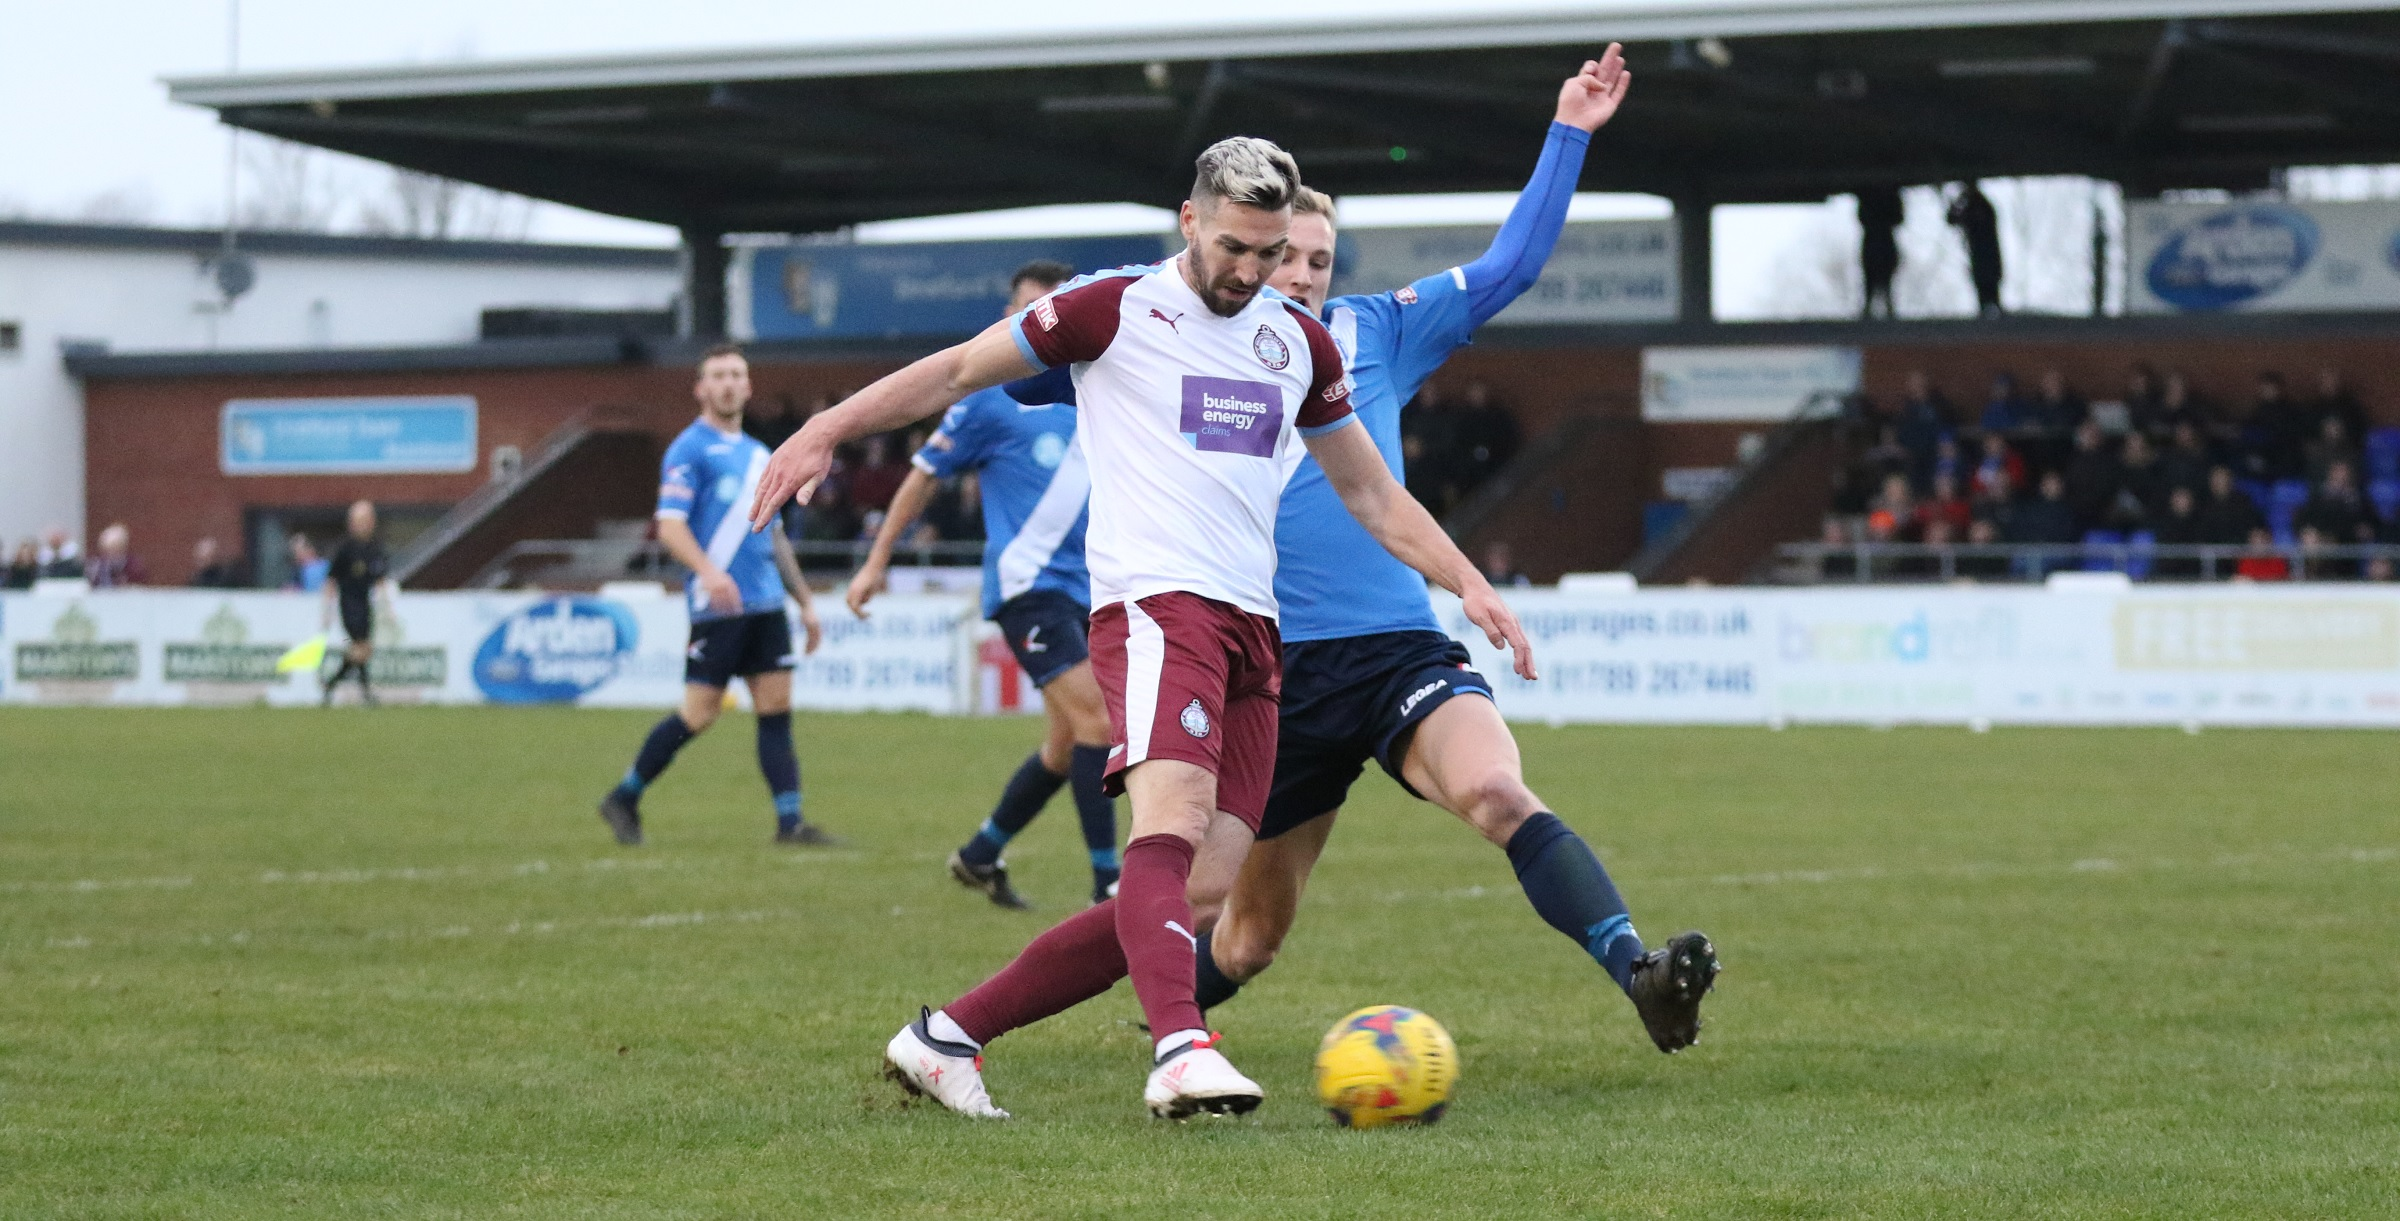 Stratford Town vs South Shields